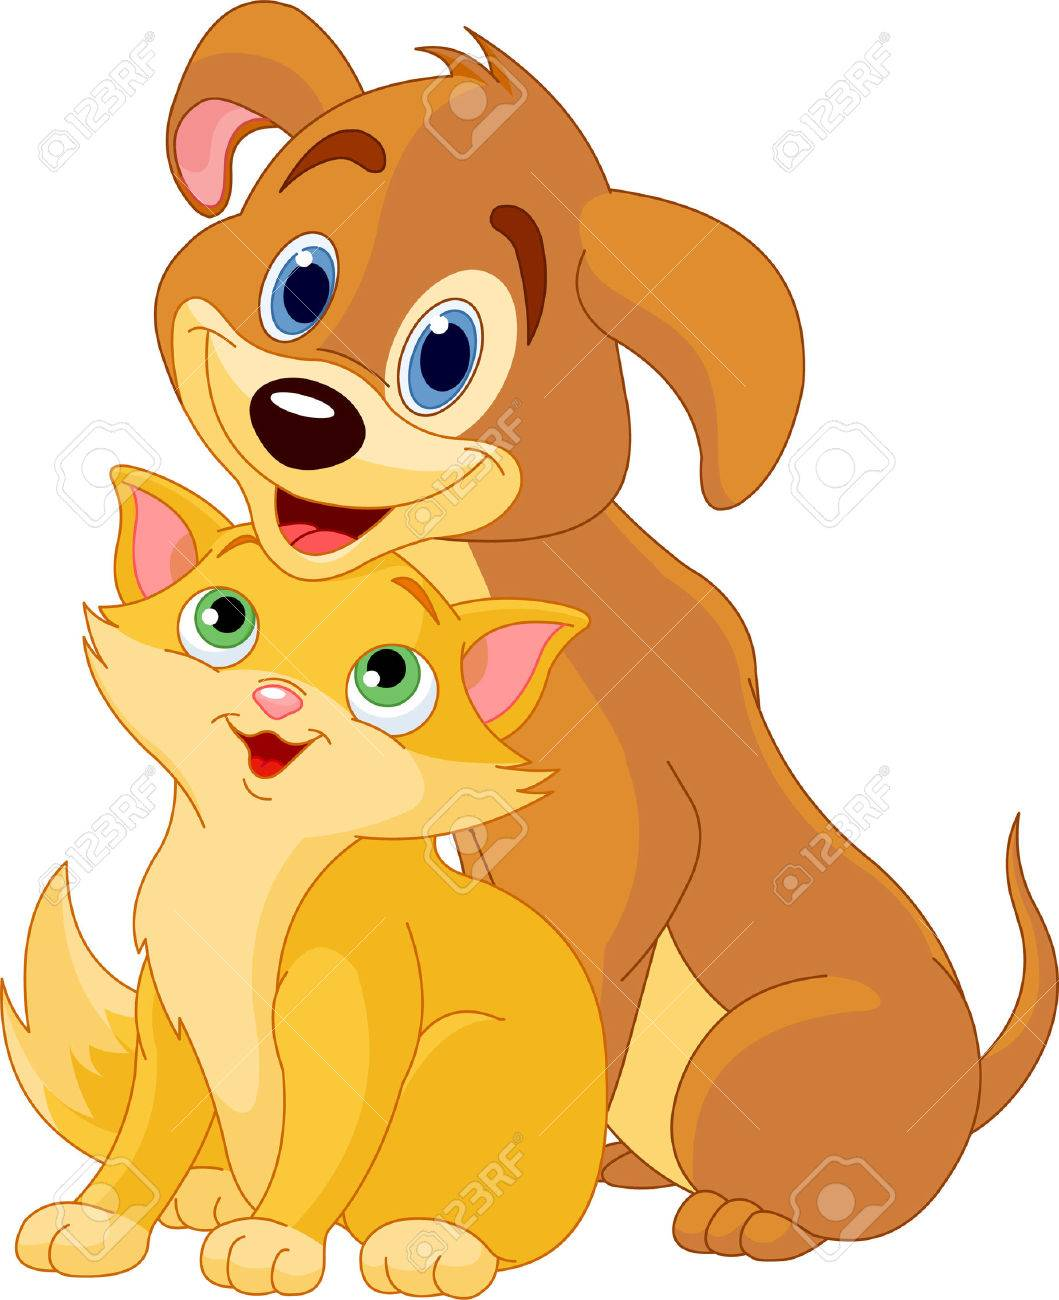 cute dog and cat best friends ever royalty free cliparts vectors